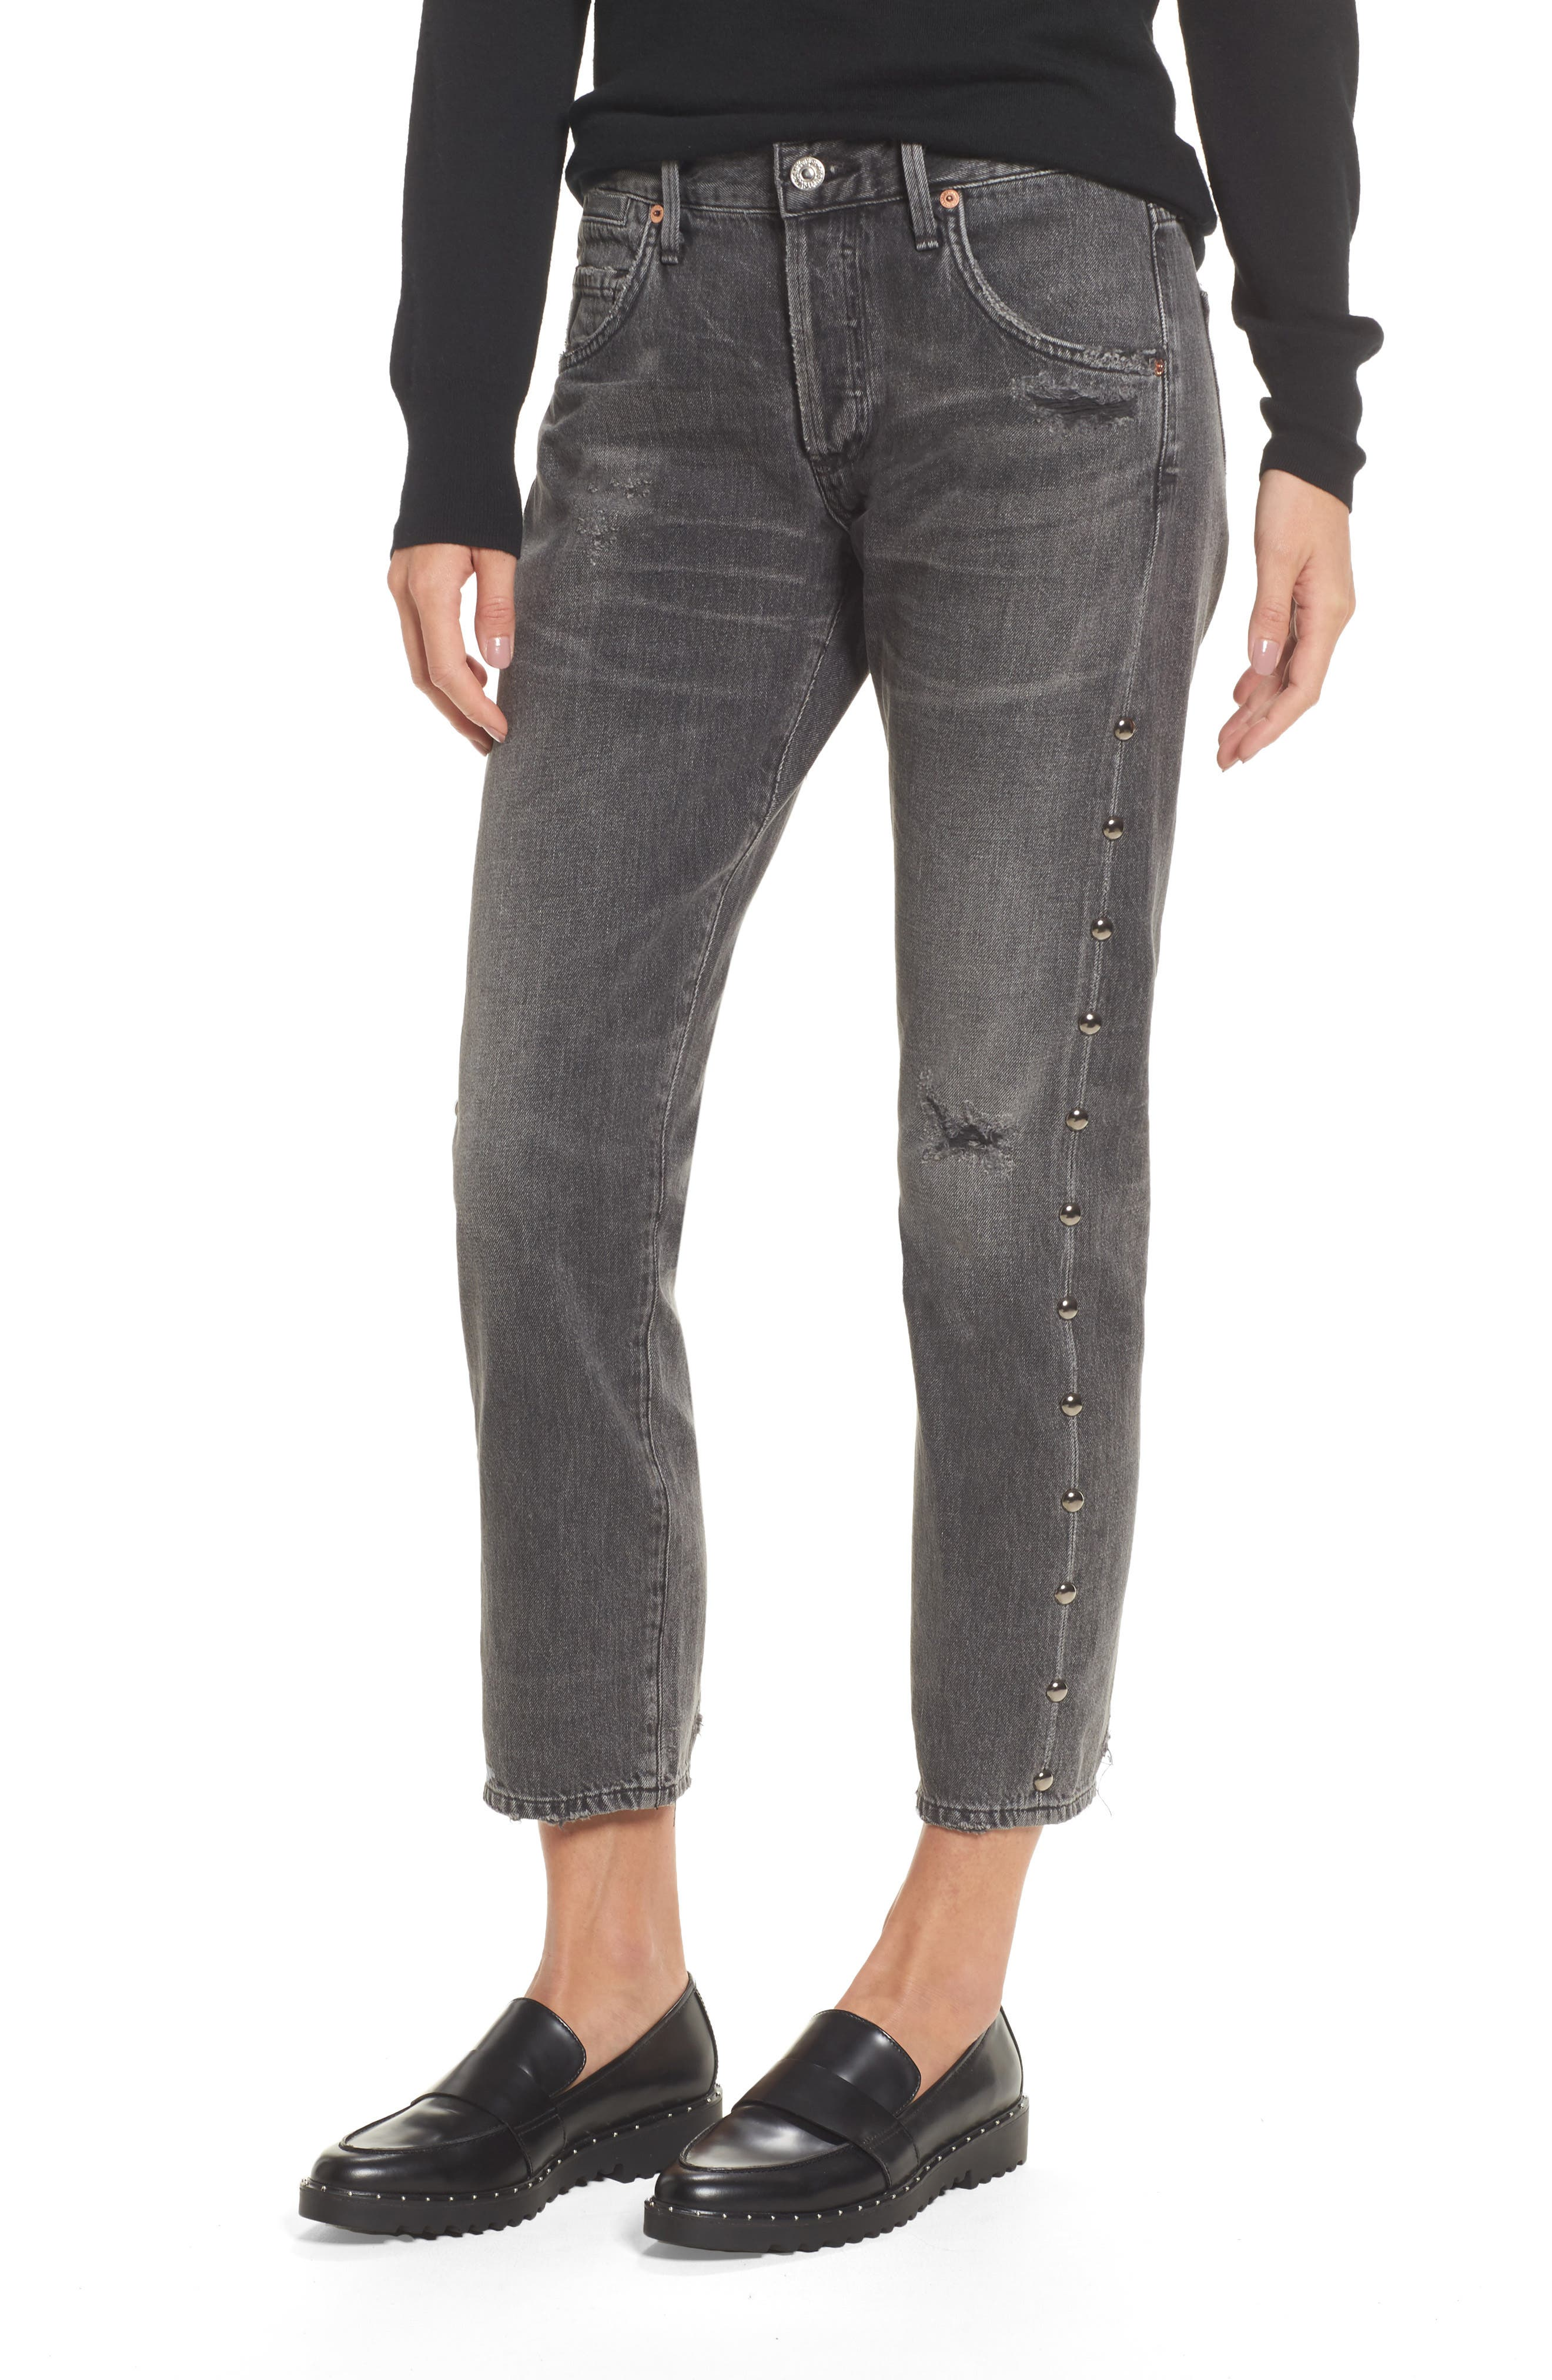 Main Image - Citizens of Humanity Emerson Studded Slim Boyfriend Jeans (Studded Hideout)